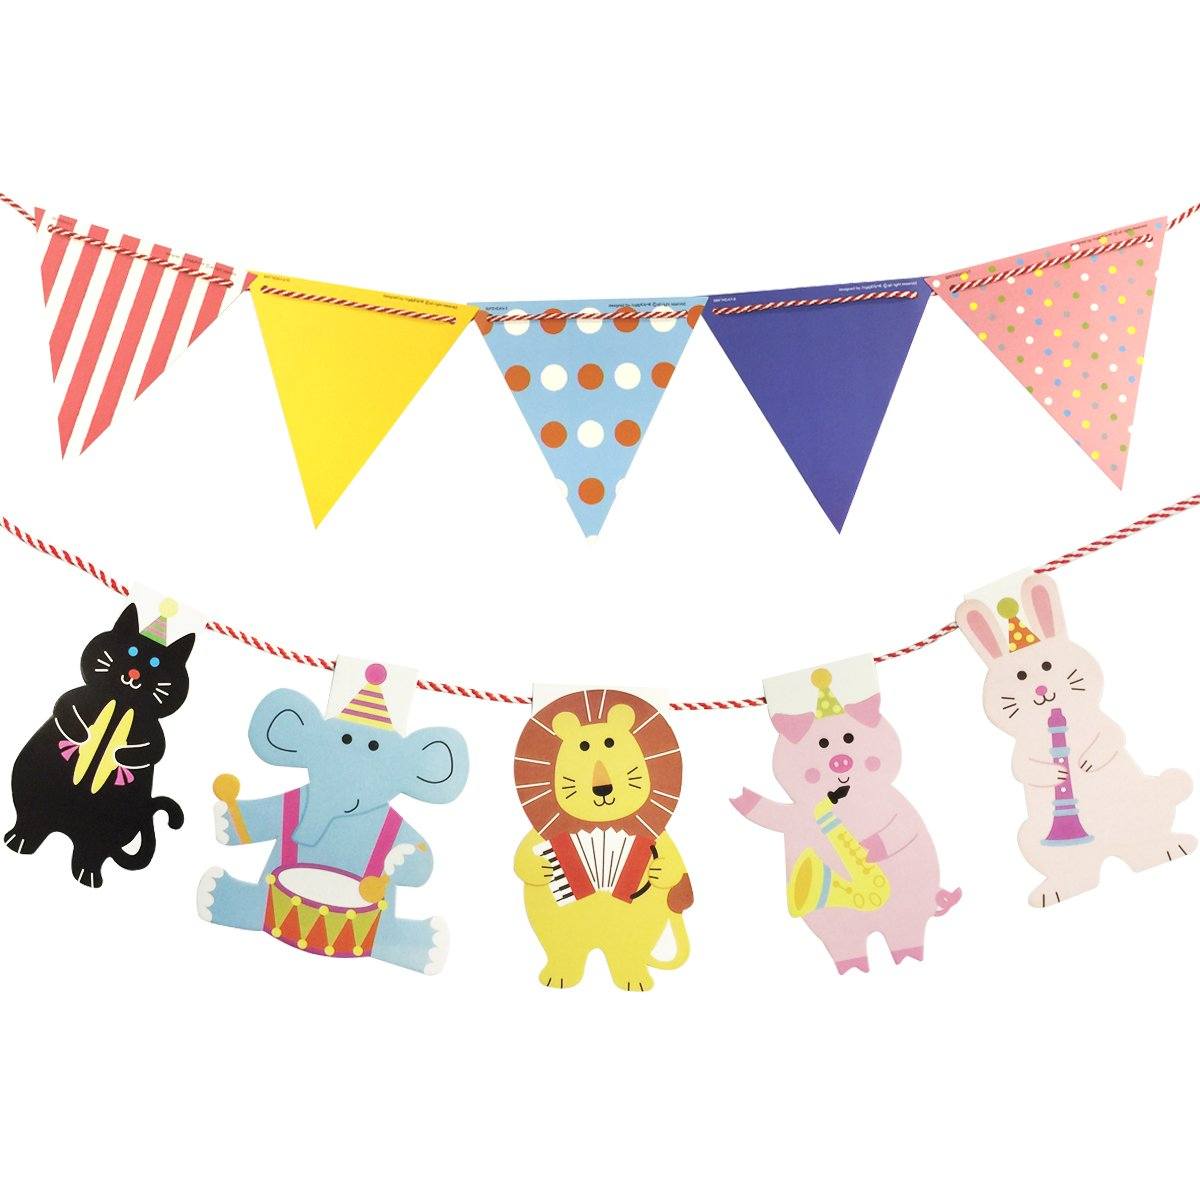 Wrapables Multi-Print Triangle Pennant and Animal Banners Party Decorations for Birthday Parties, Baby Showers, and Nursery Decor, Party Animals